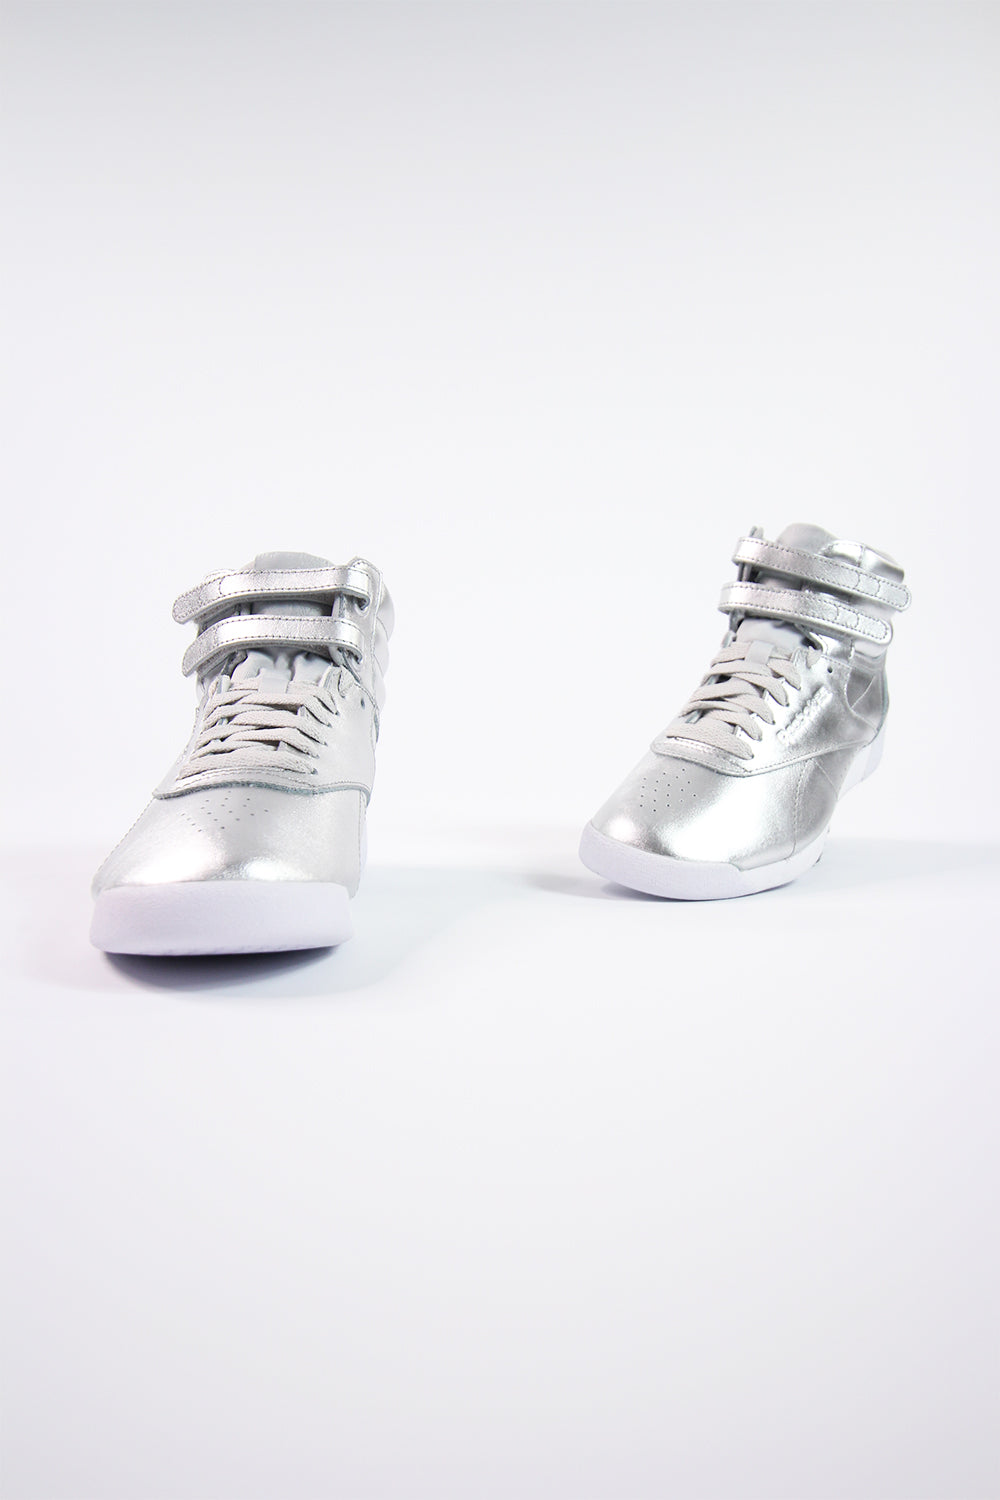 Reebok - F/S HI Metallic Women (Silber Metallic/ Steel/ White) BS9944